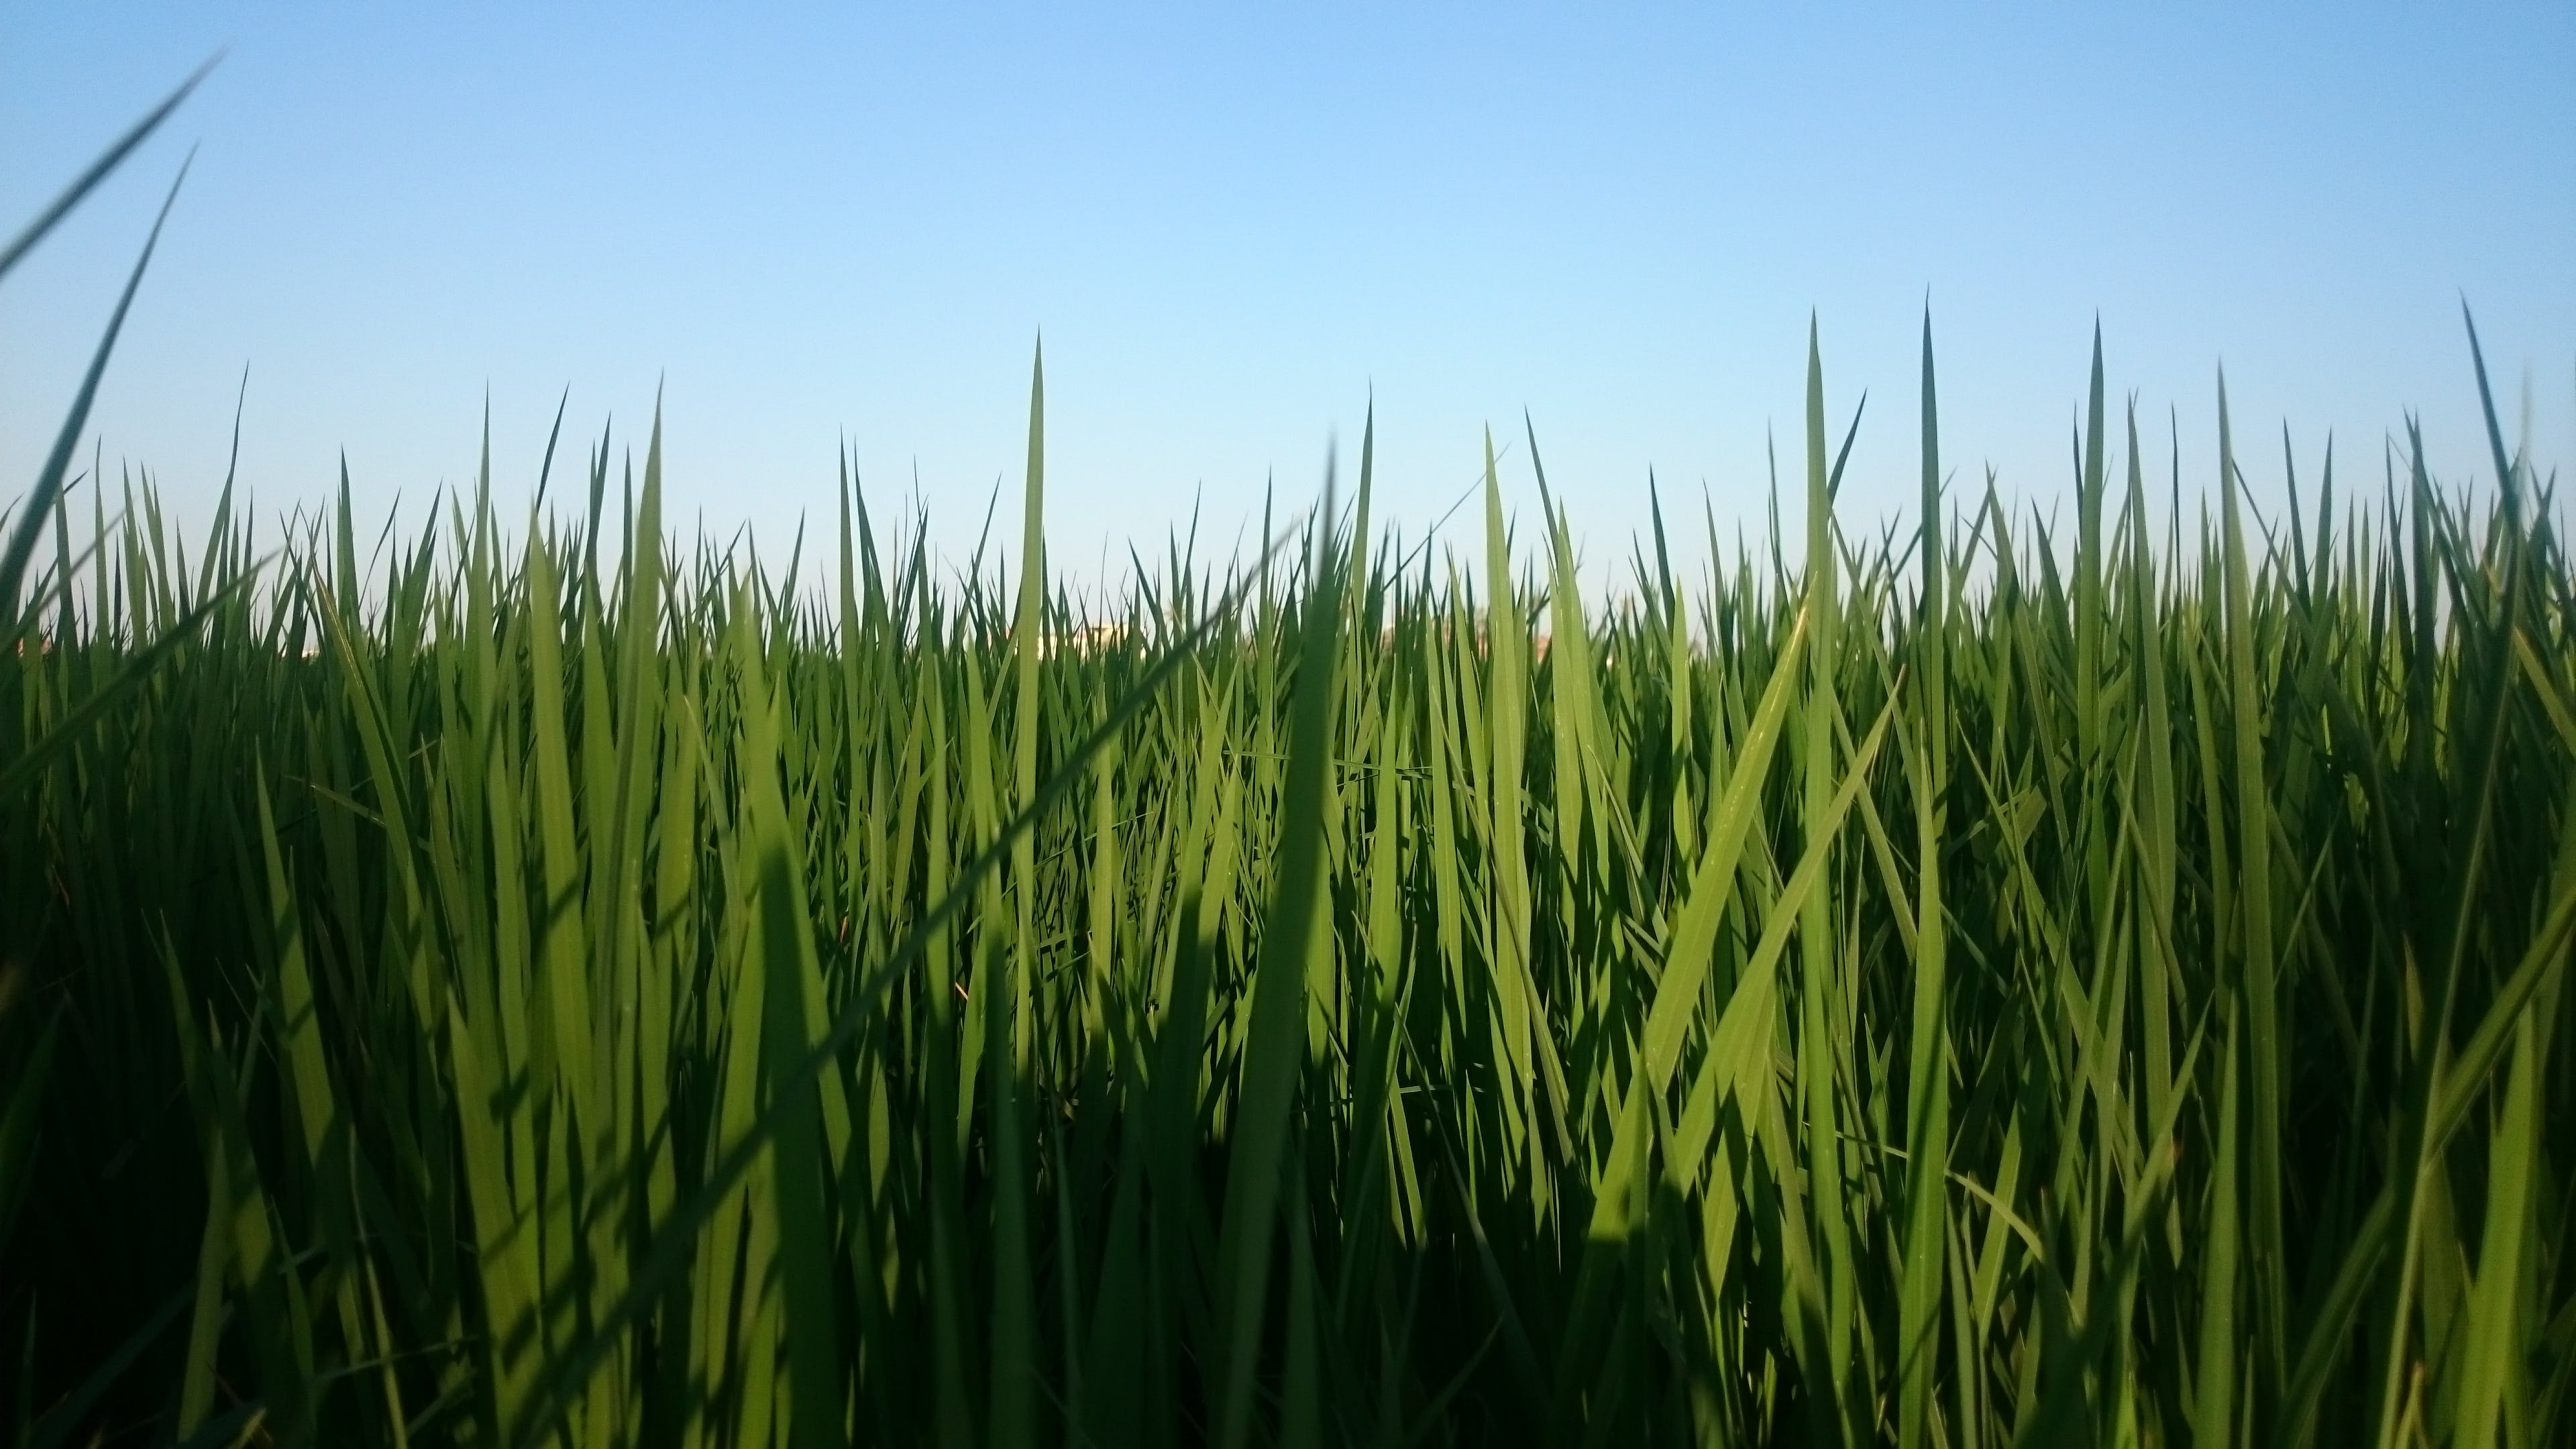 Close-up of Grass on Field Against Clear Sky